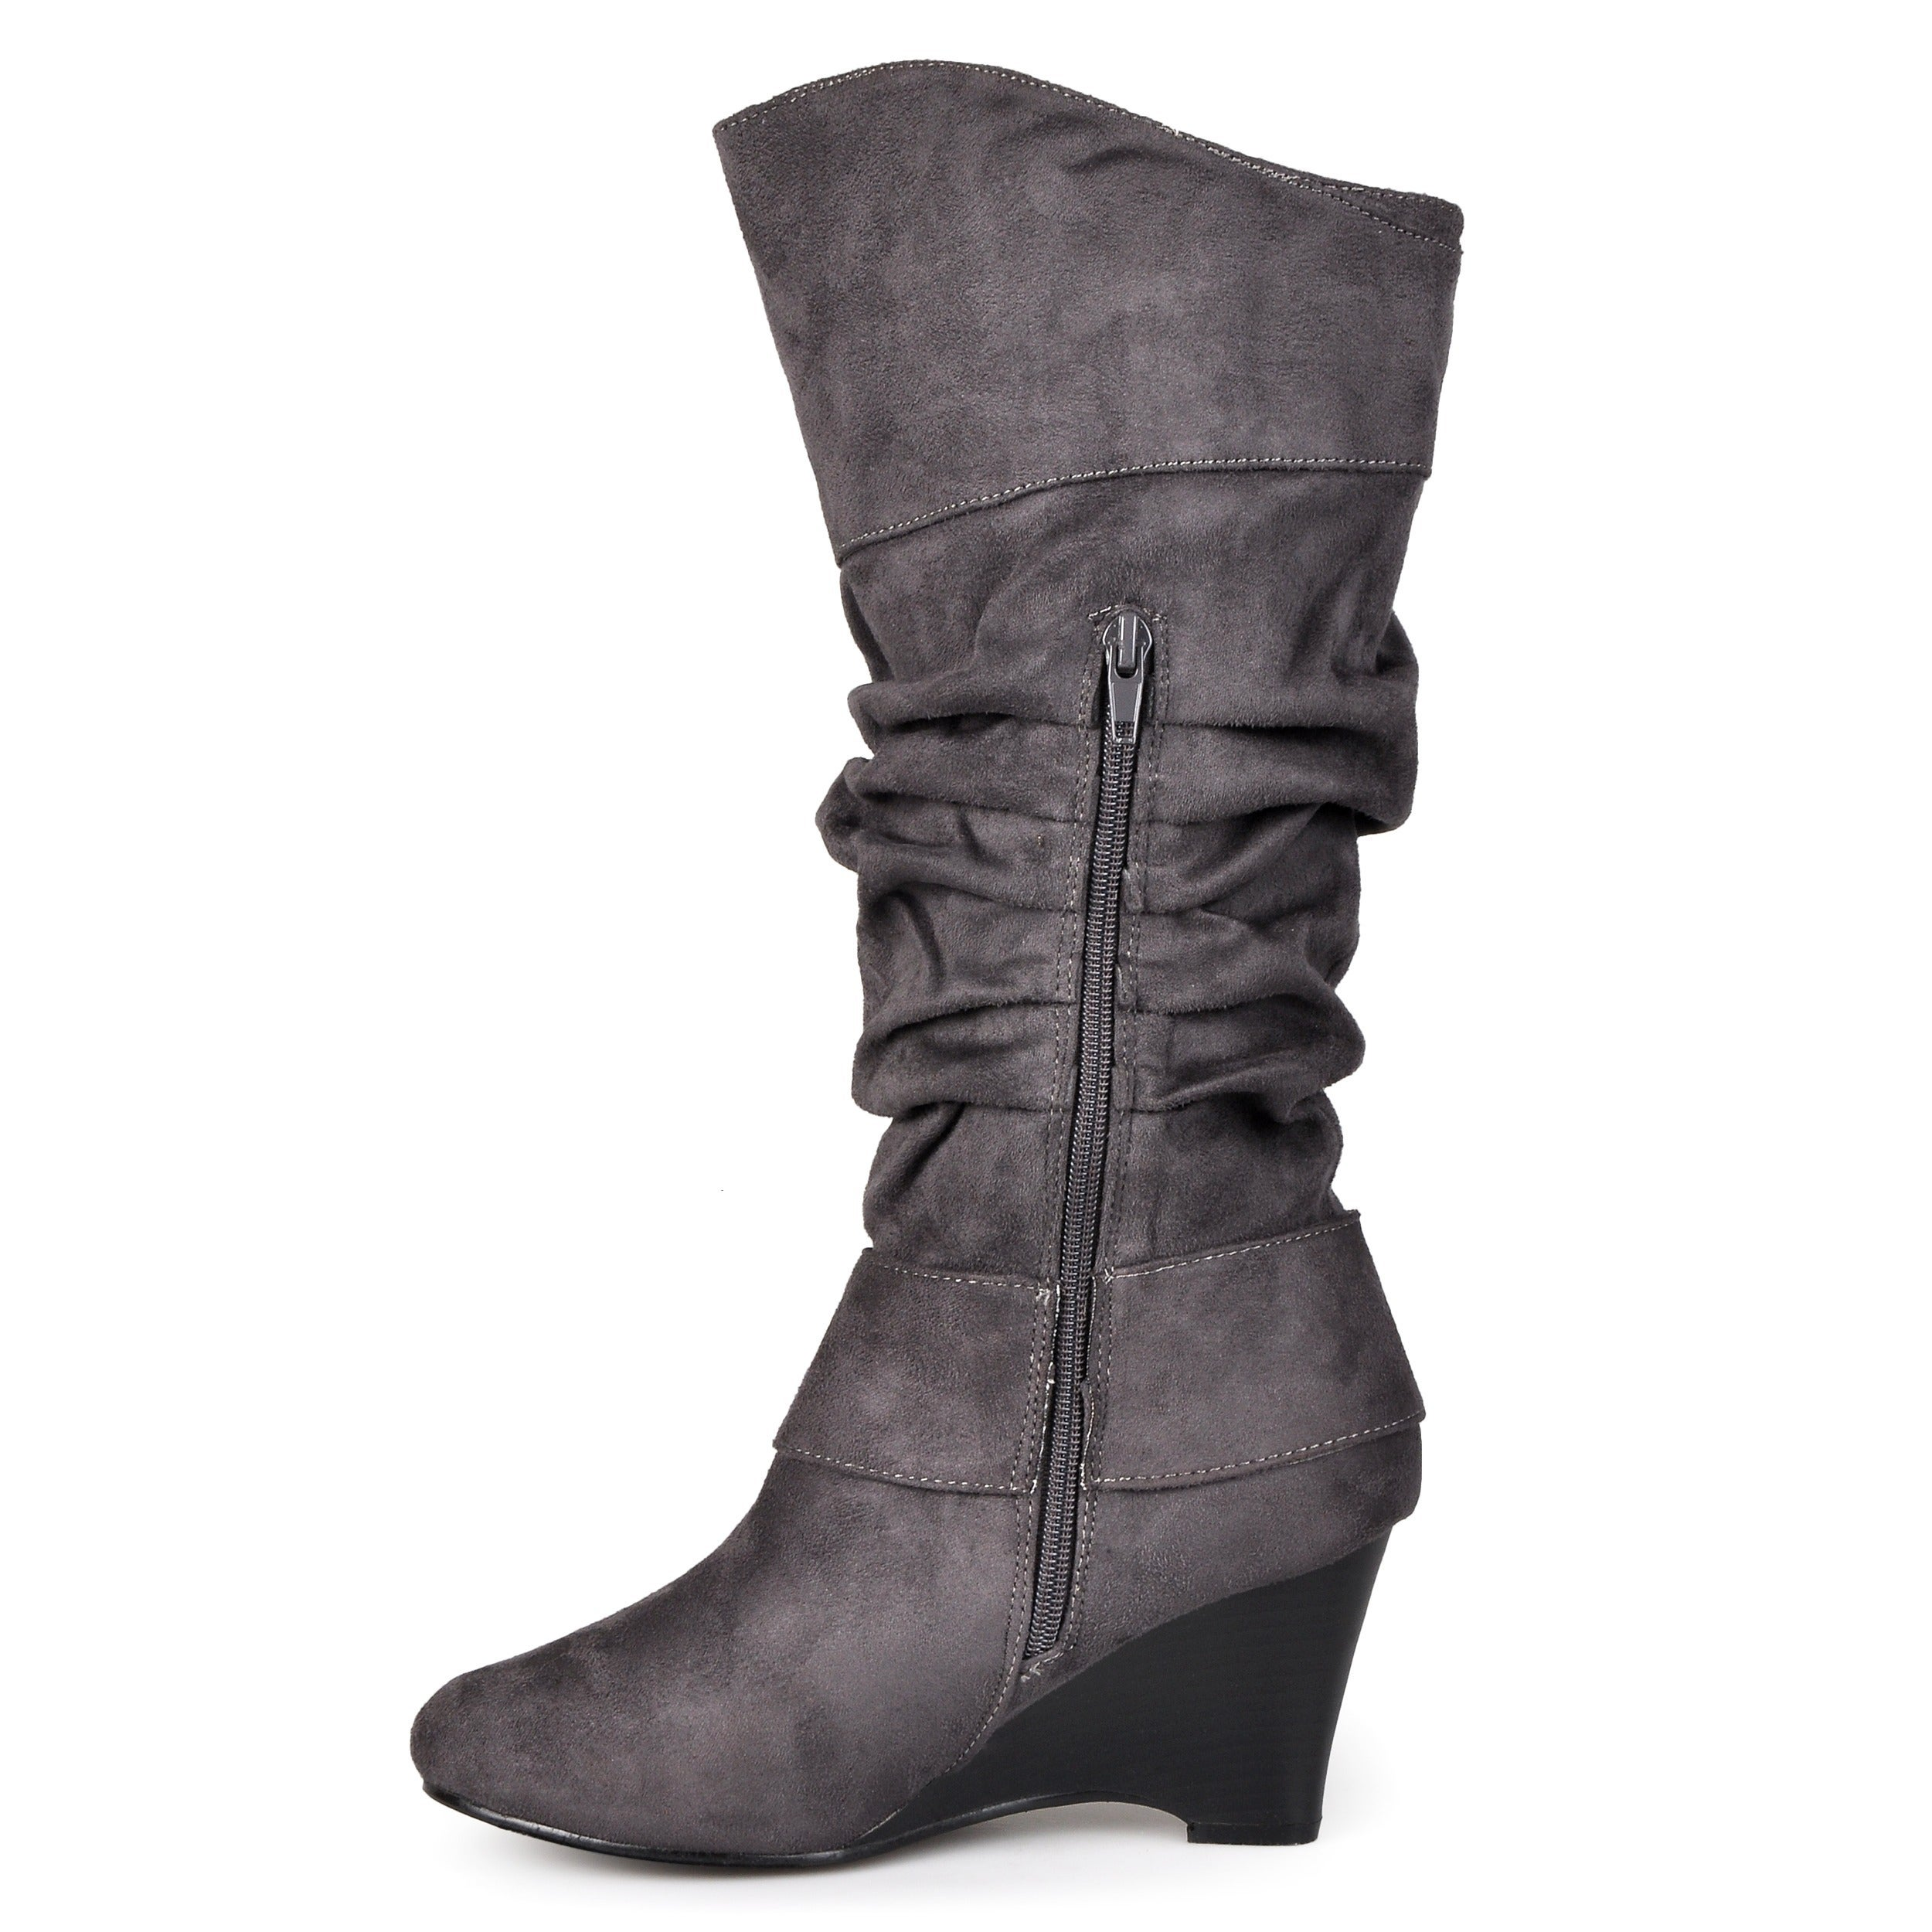 6490e8ca516 Shop Journee Collection Women's Regular and Wide-Calf 'Irene-1' Buckle Slouch  Wedge Knee-High Boots - Free Shipping Today - Overstock - 5162852